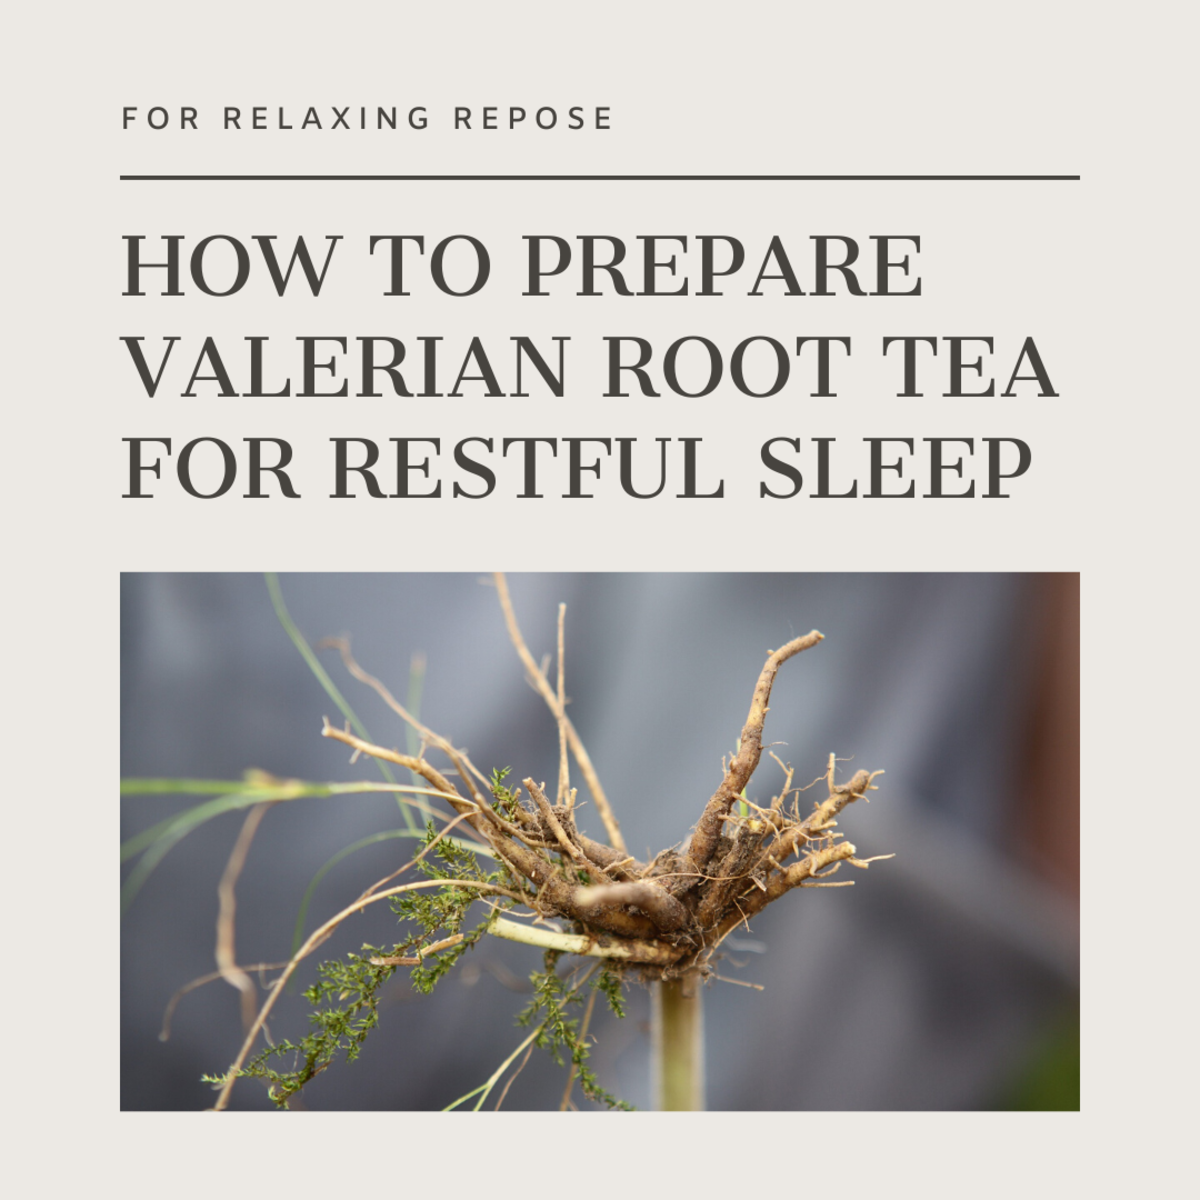 This article will break down how to brew your own valerian root tea to promote restful sleep.